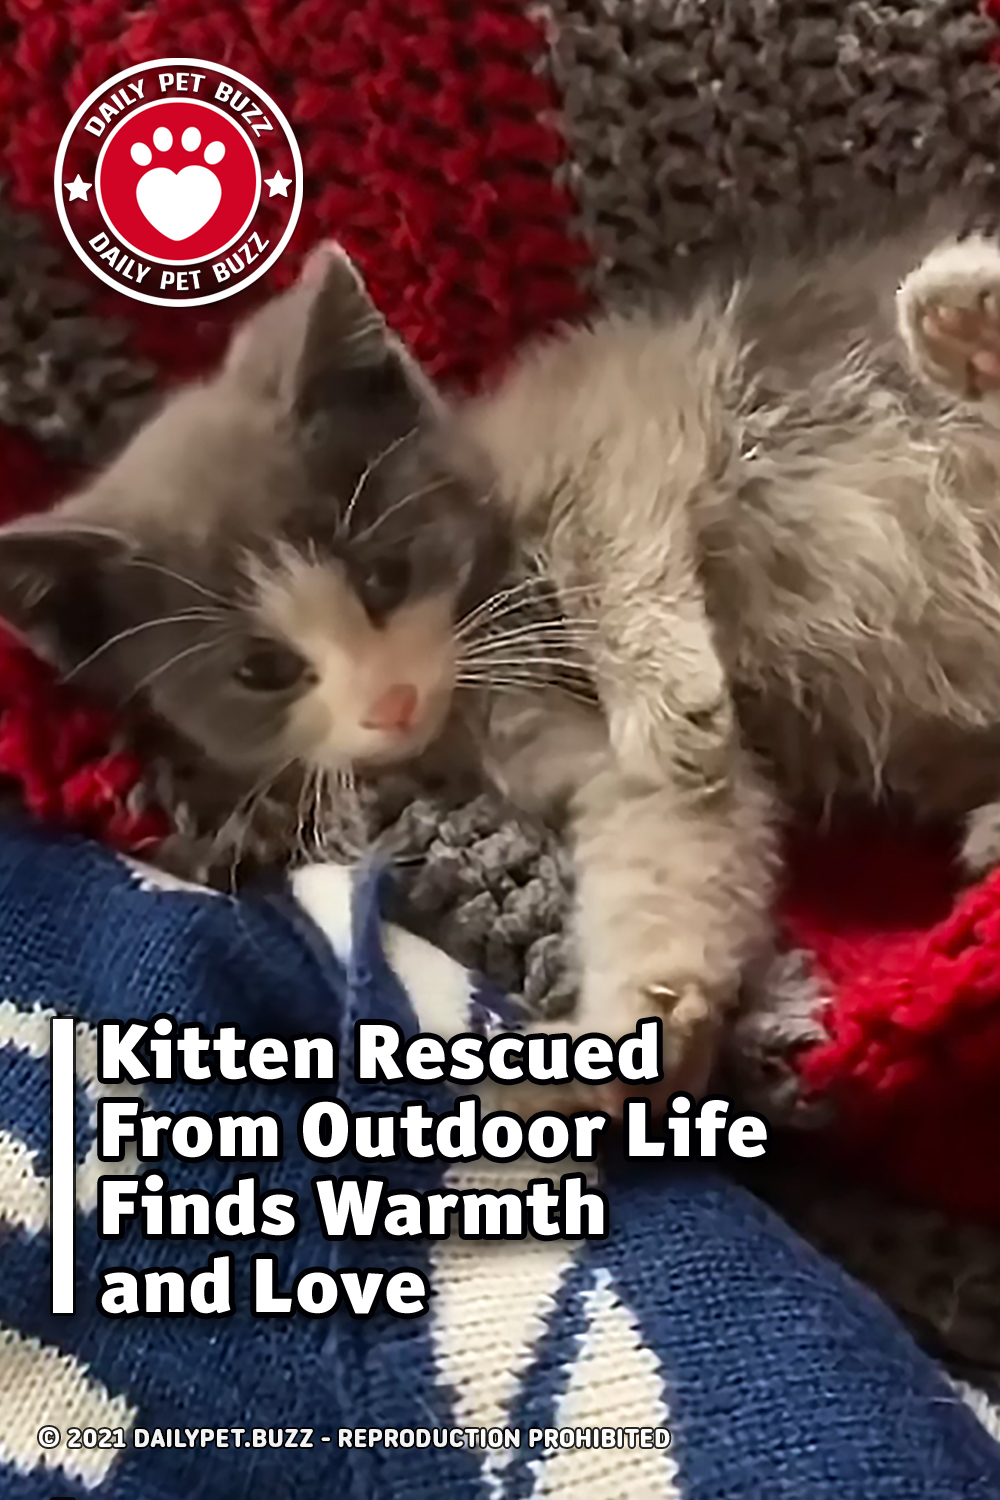 Kitten Rescued From Outdoor Life Finds Warmth and Love